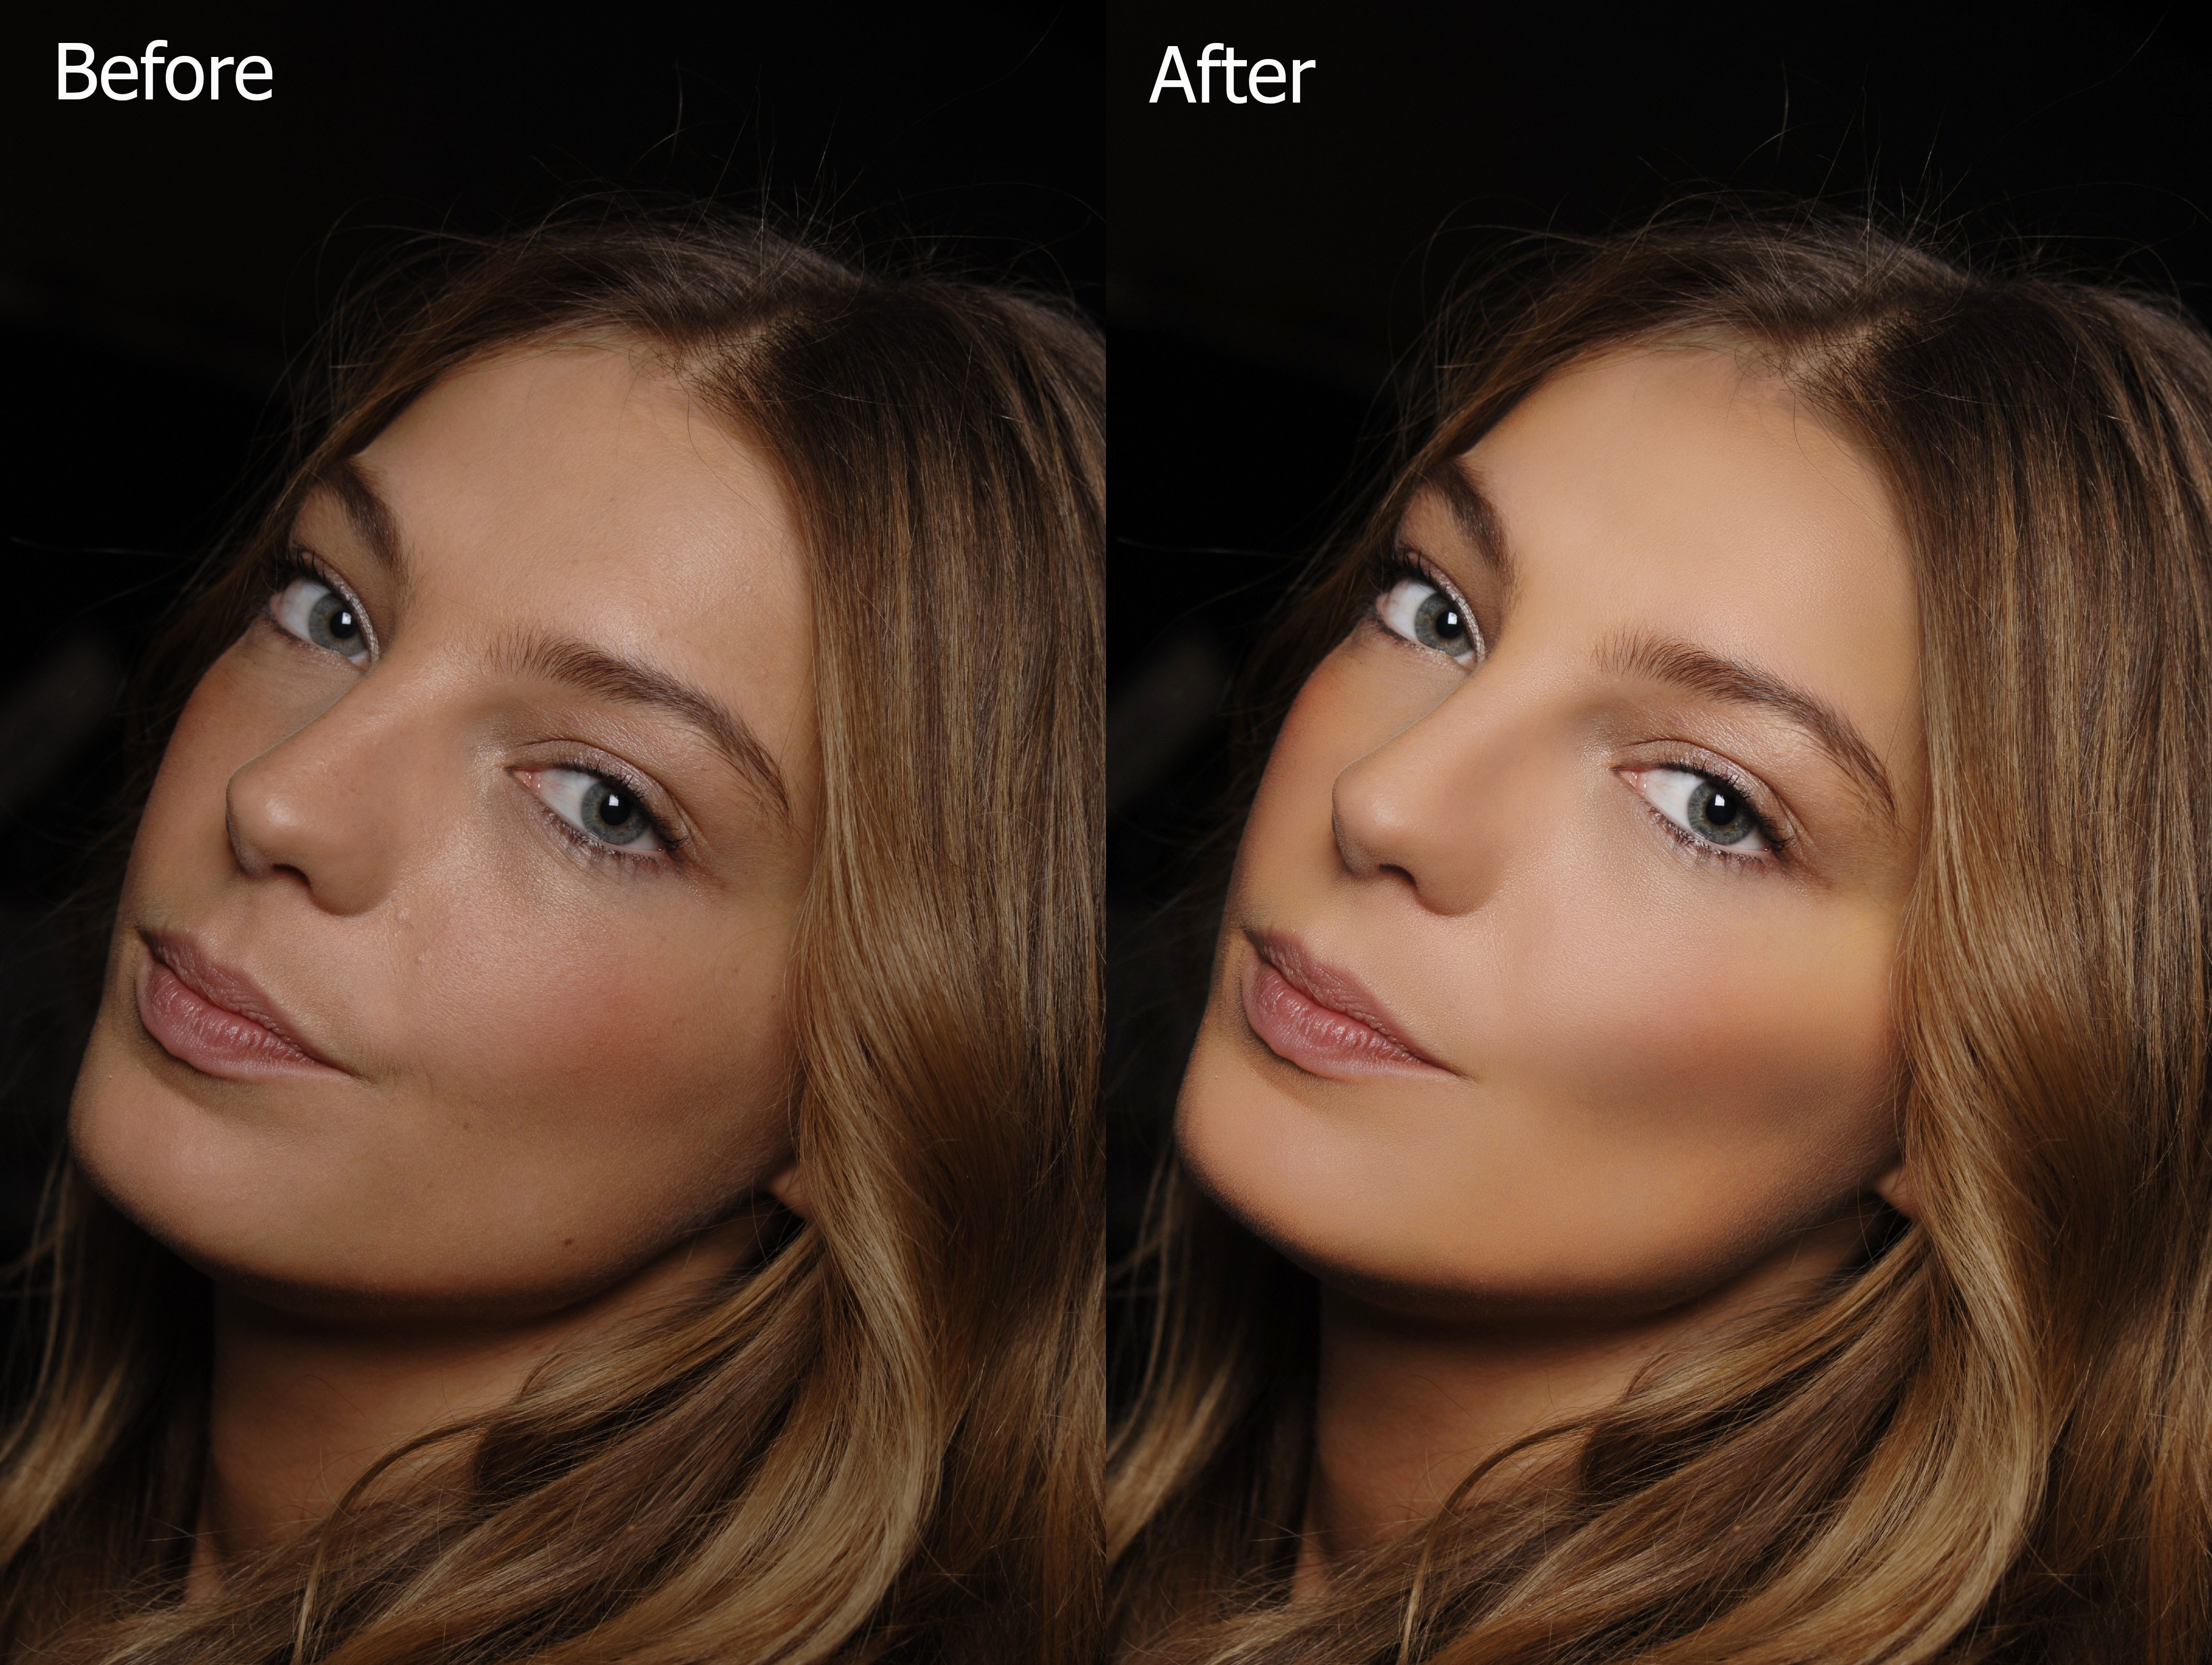 professionally retouch 2 images